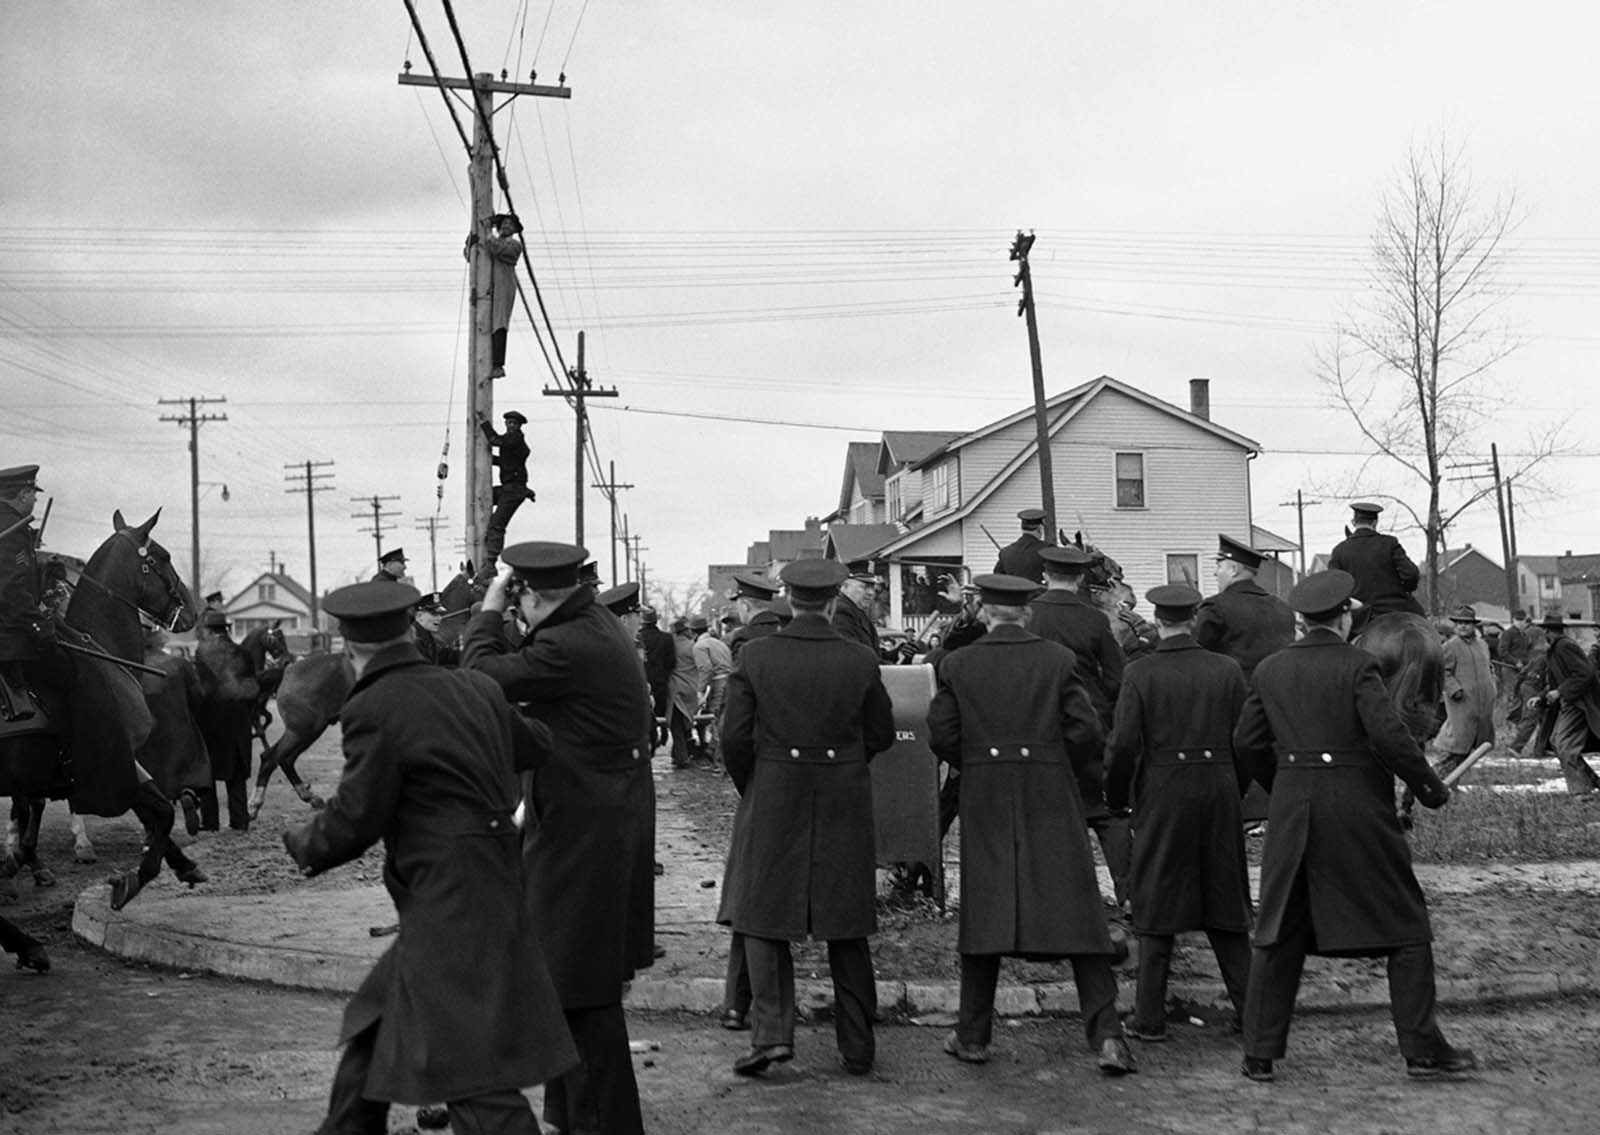 Stones flew despite a police riot squad's efforts to maintain order in Detroit, on February 28, 1942 between prospective Black tenants of a million-dollar defense housing project and white picketers who halted their moving vans. Several were hurt in the picket line skirmishes.